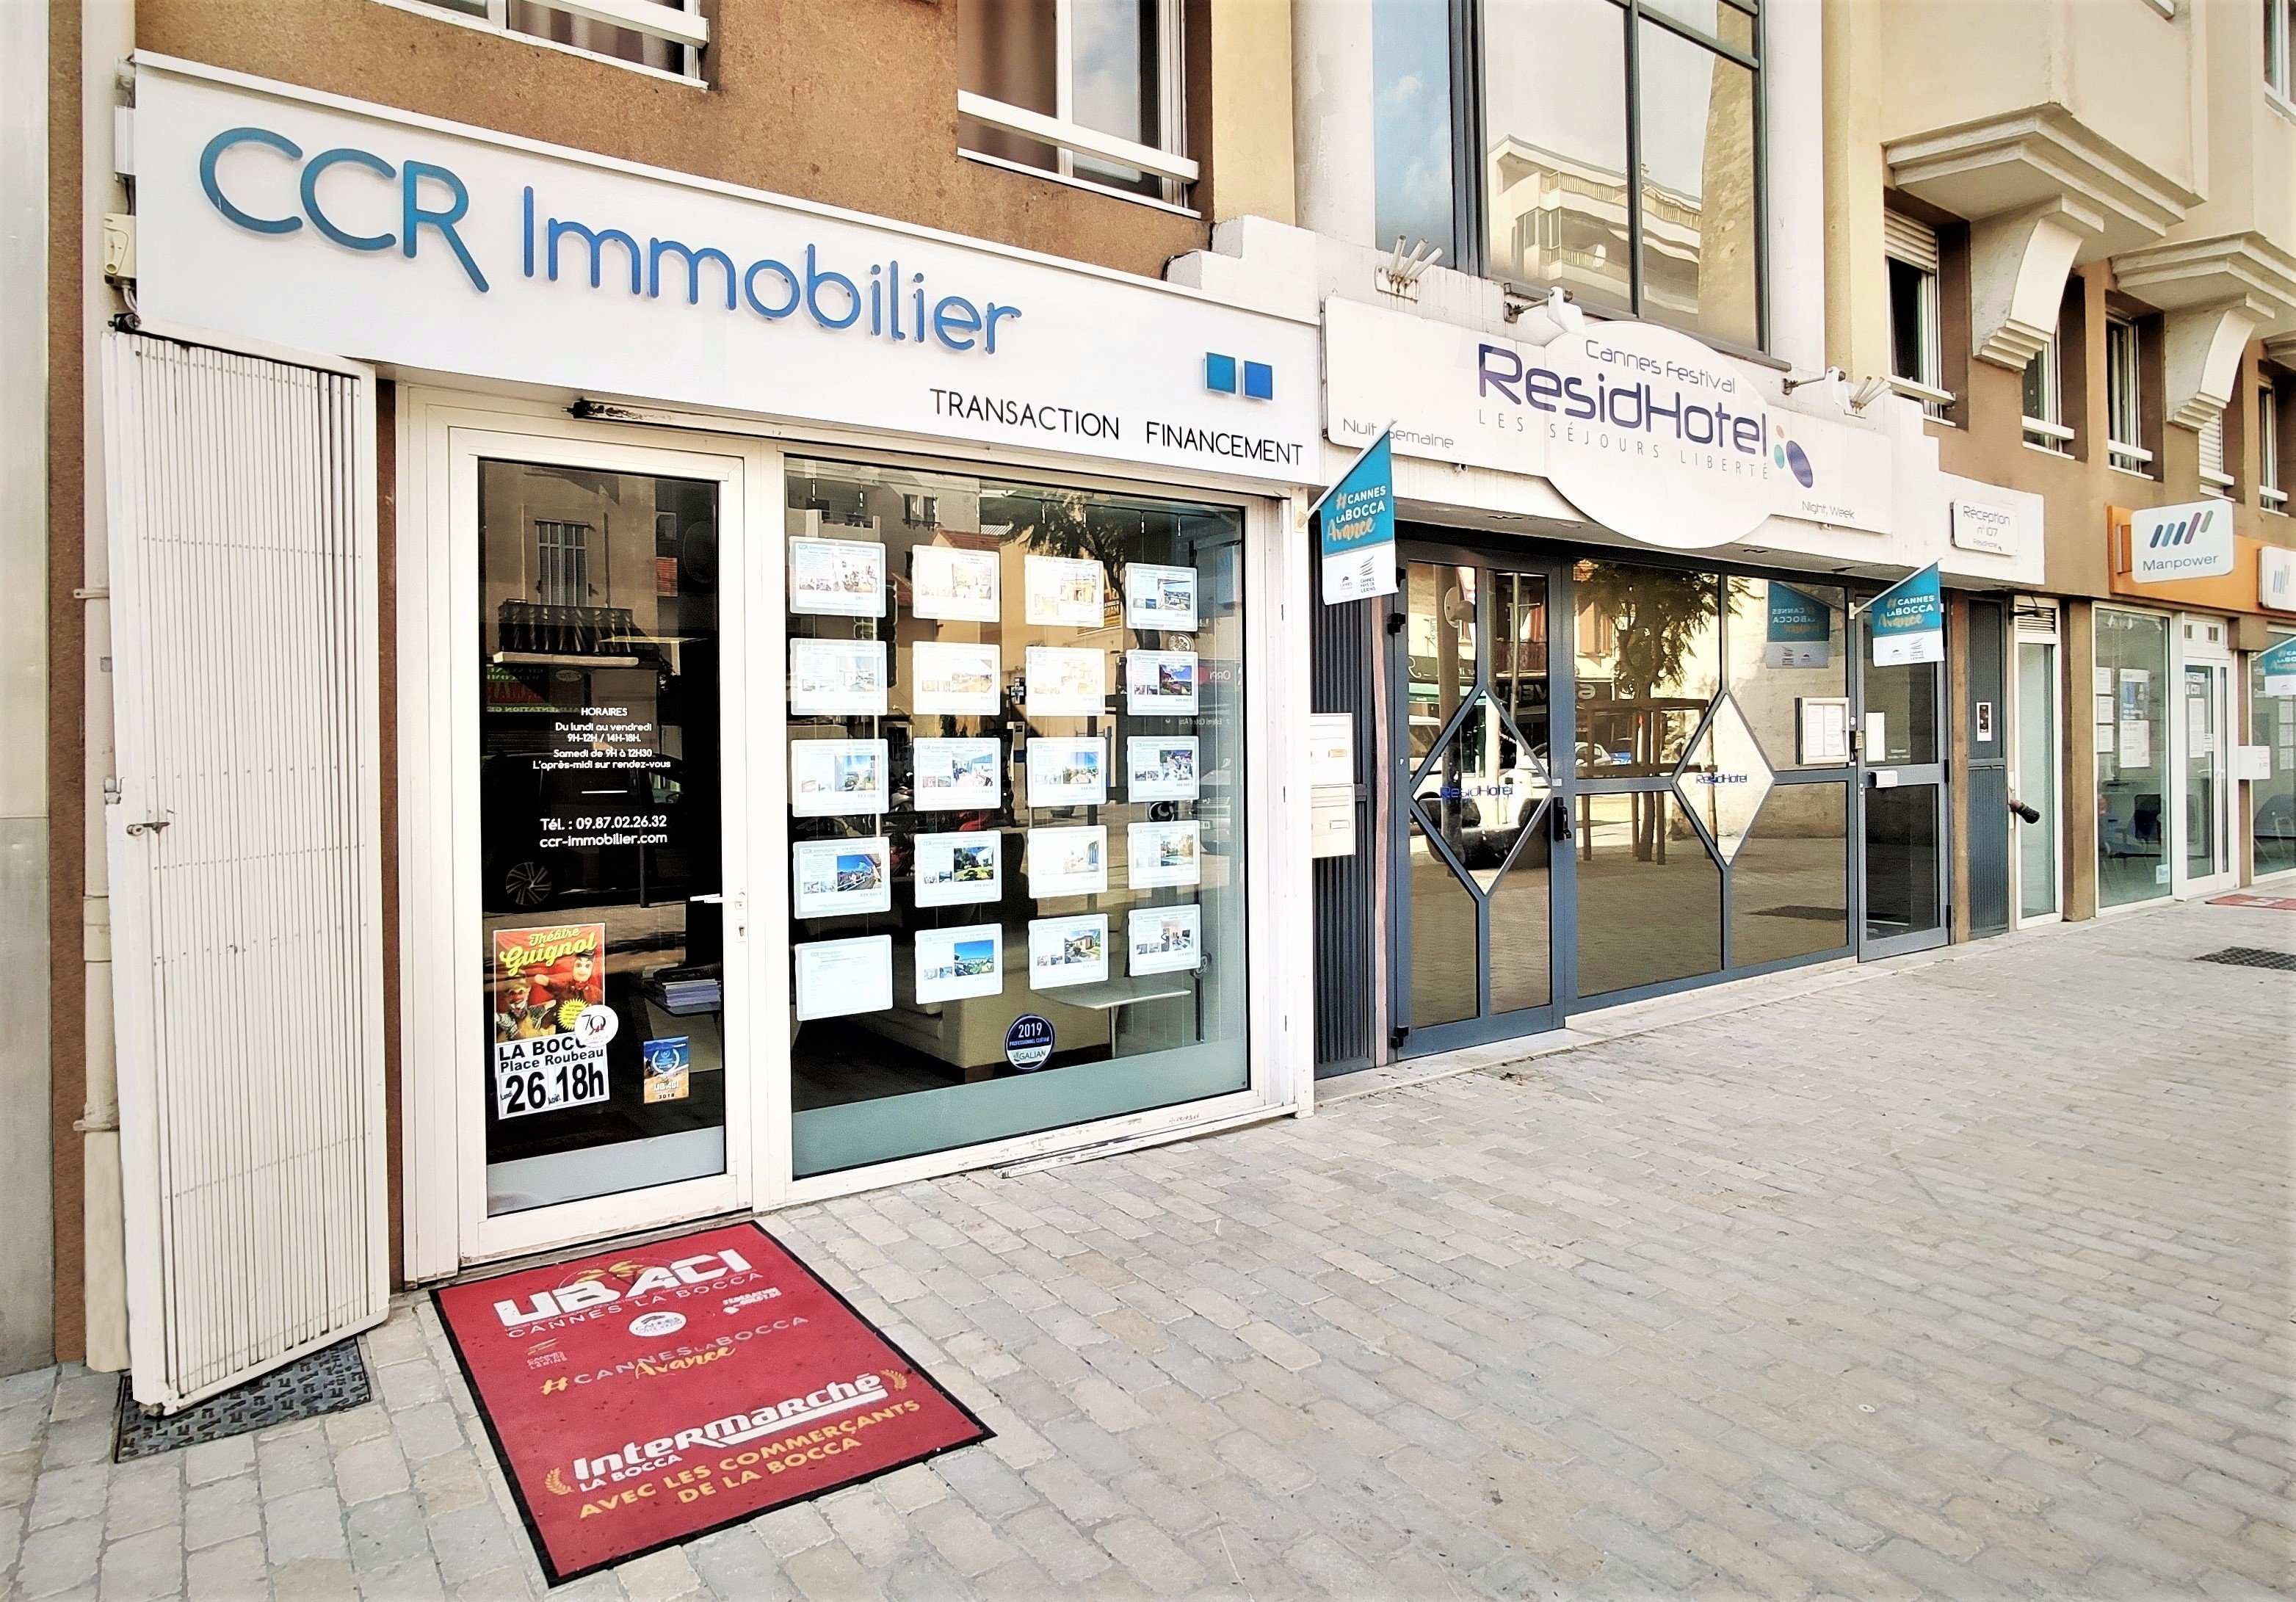 CCR Immobilier